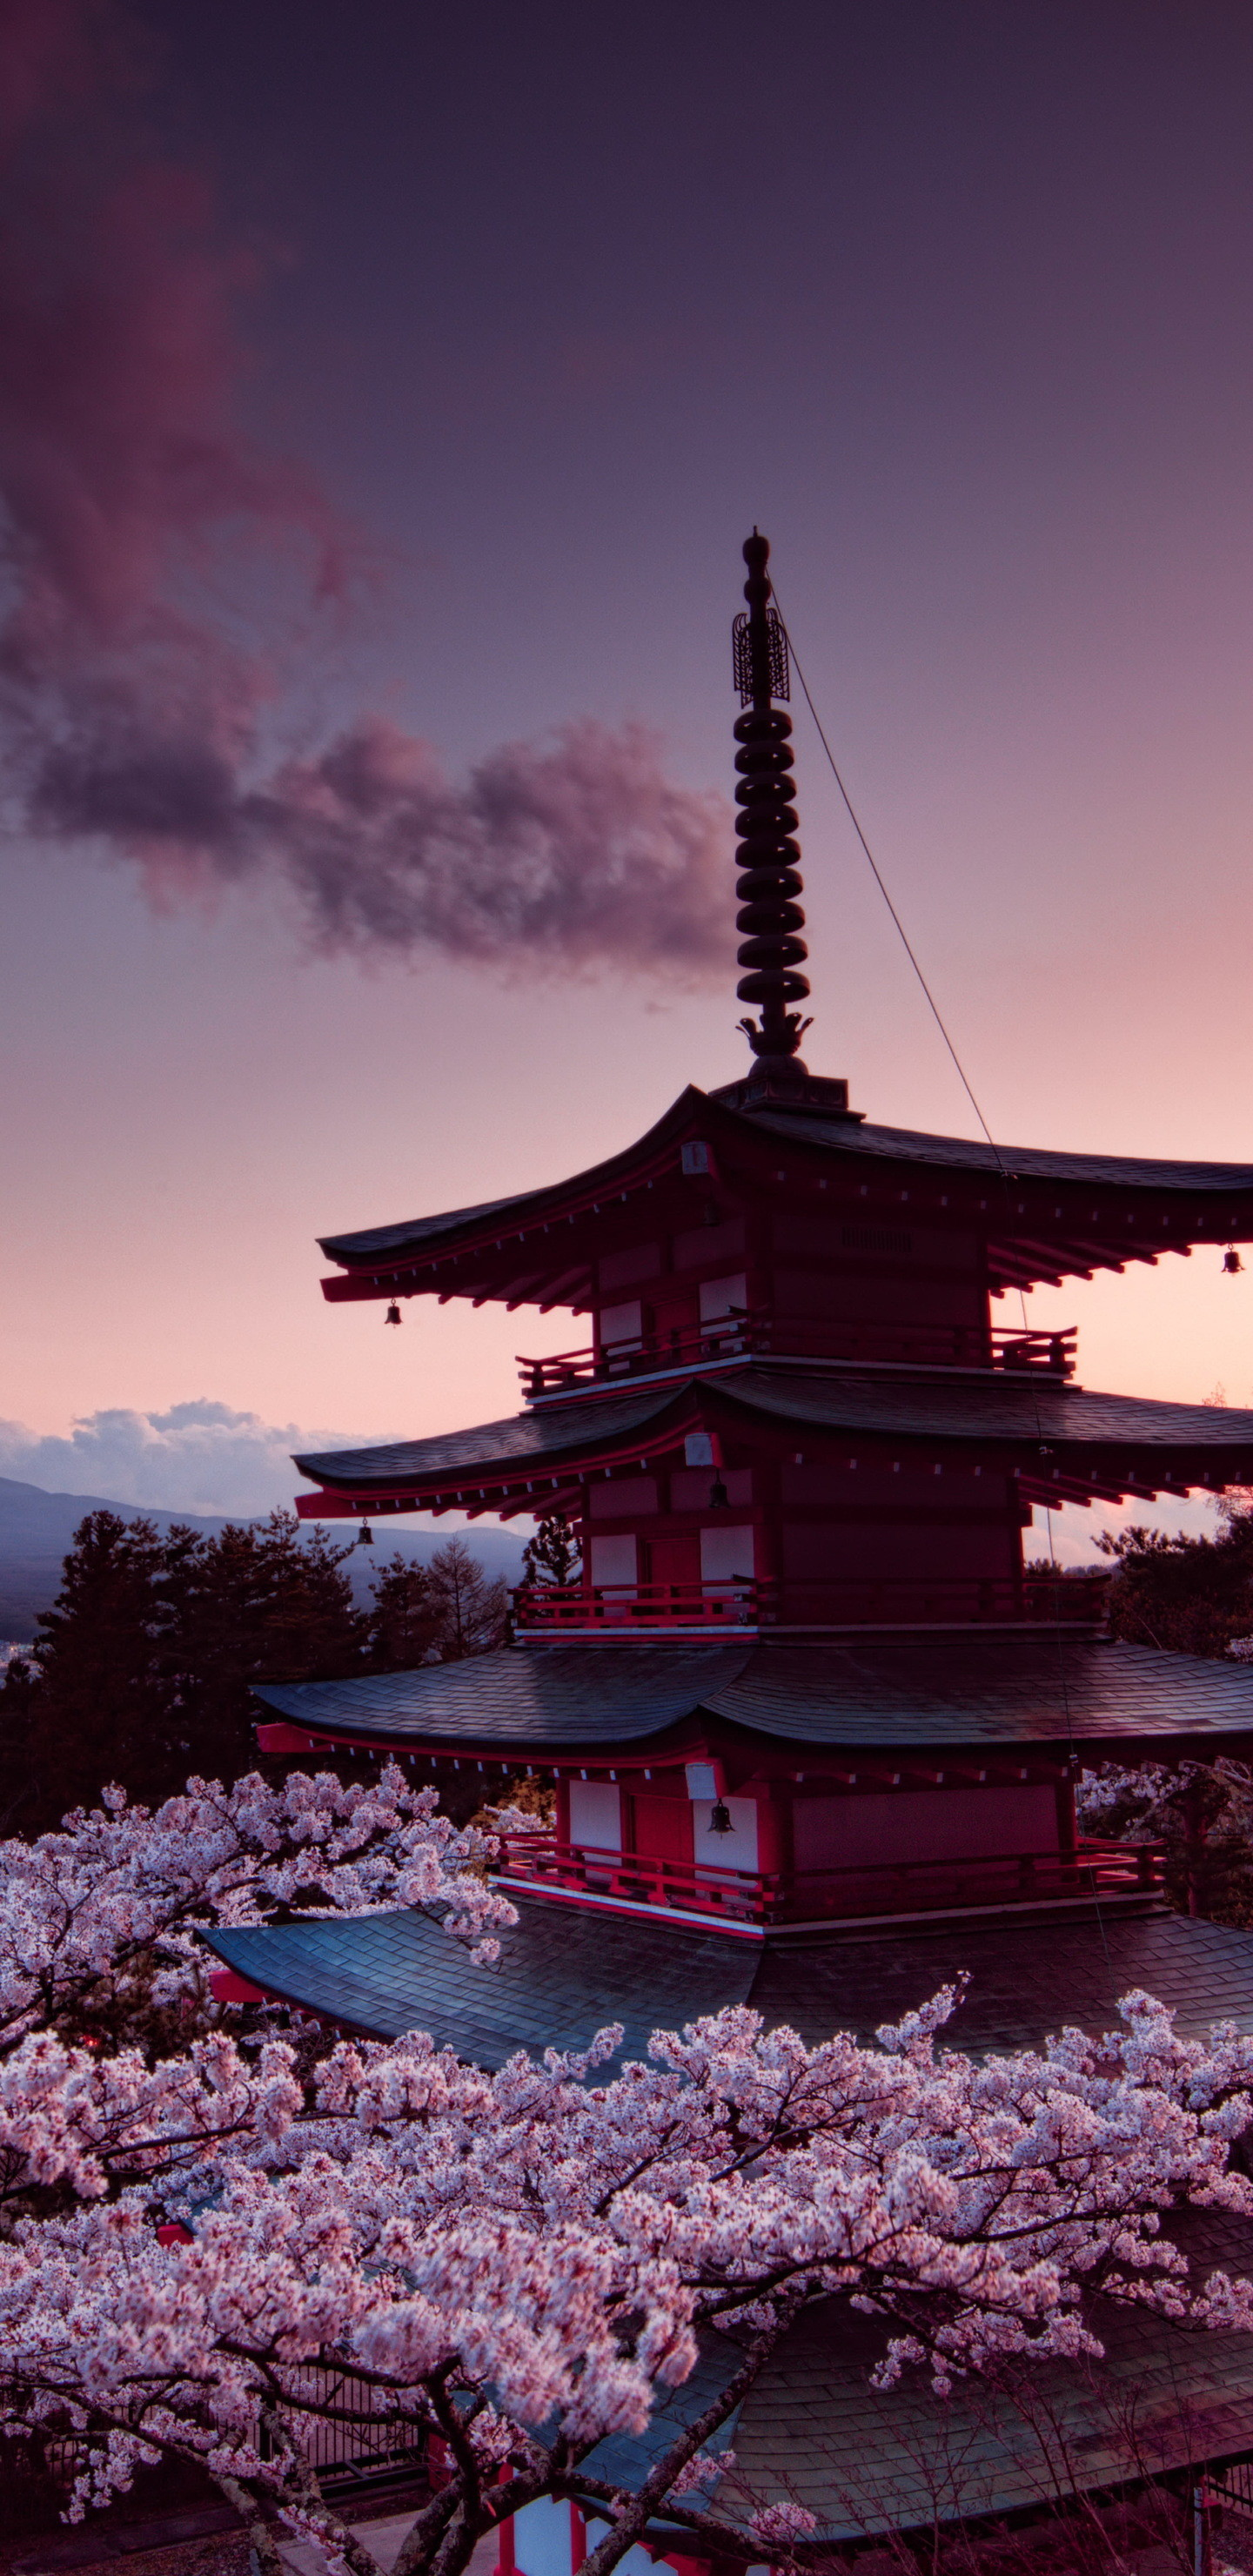 1440x2960 churei-tower-mount-fuji-in-japan-8k-68.